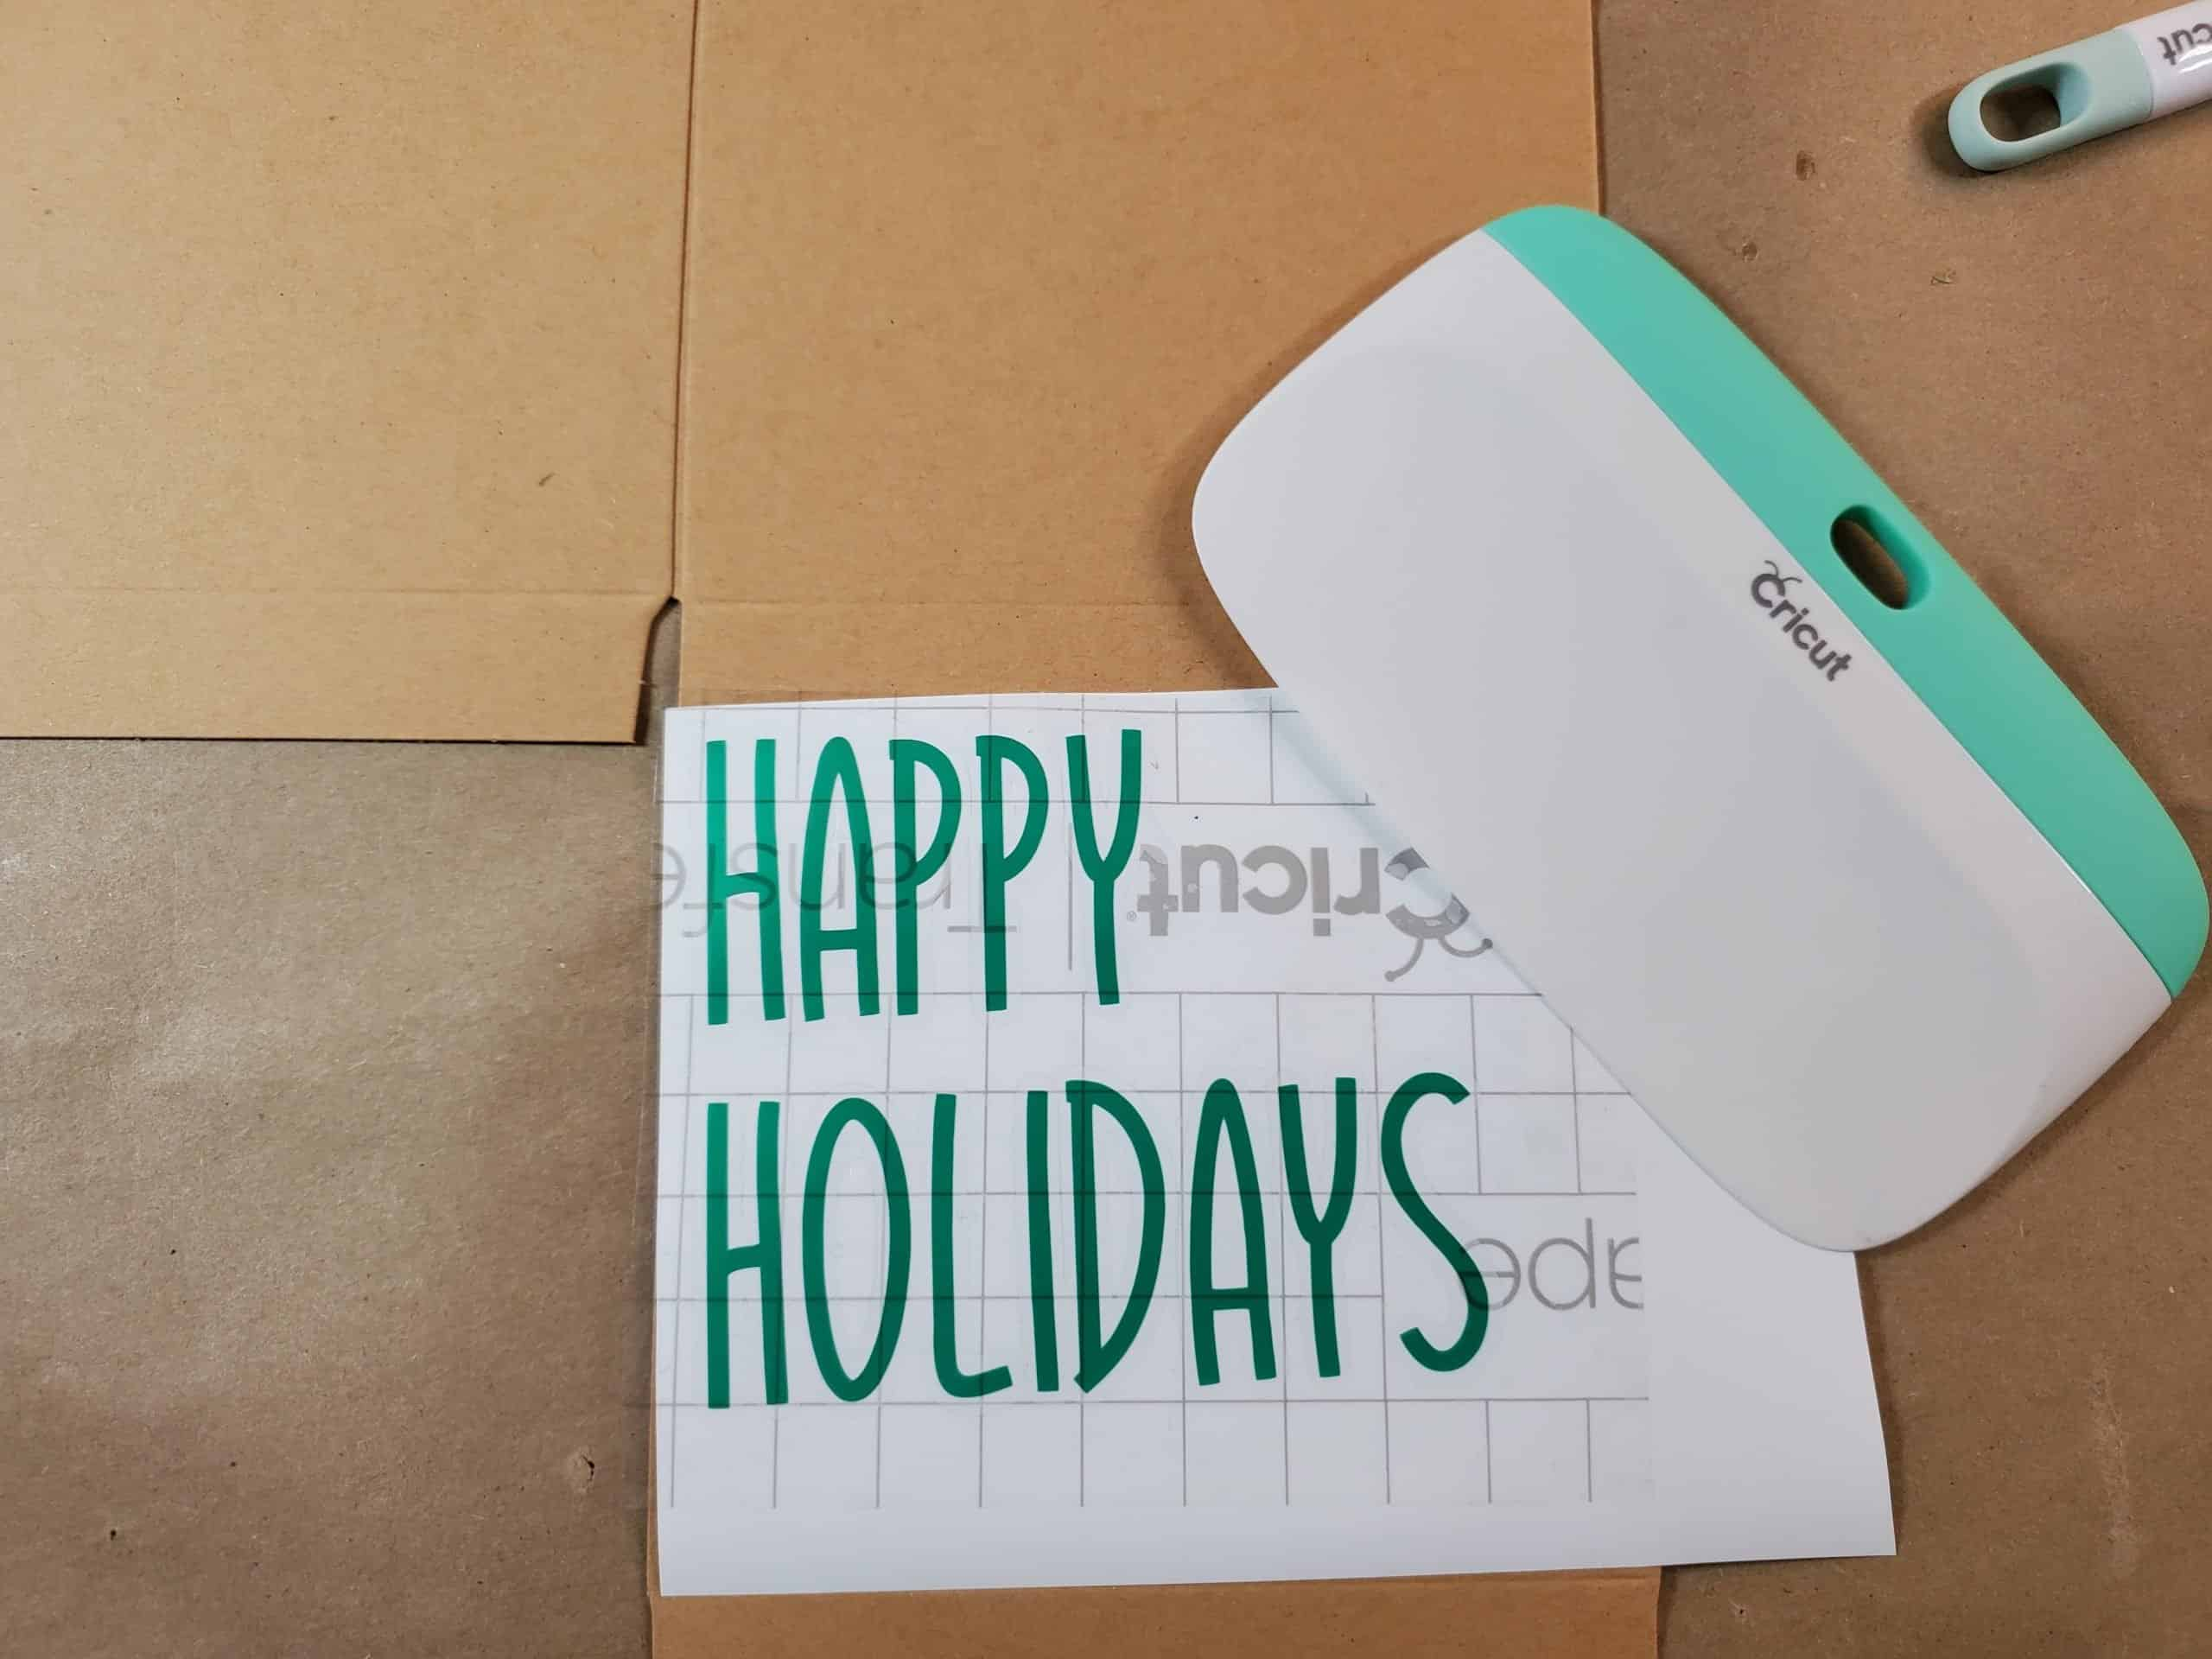 Happy Holidays Lettering Ready to Transfer to Box using transfer tape